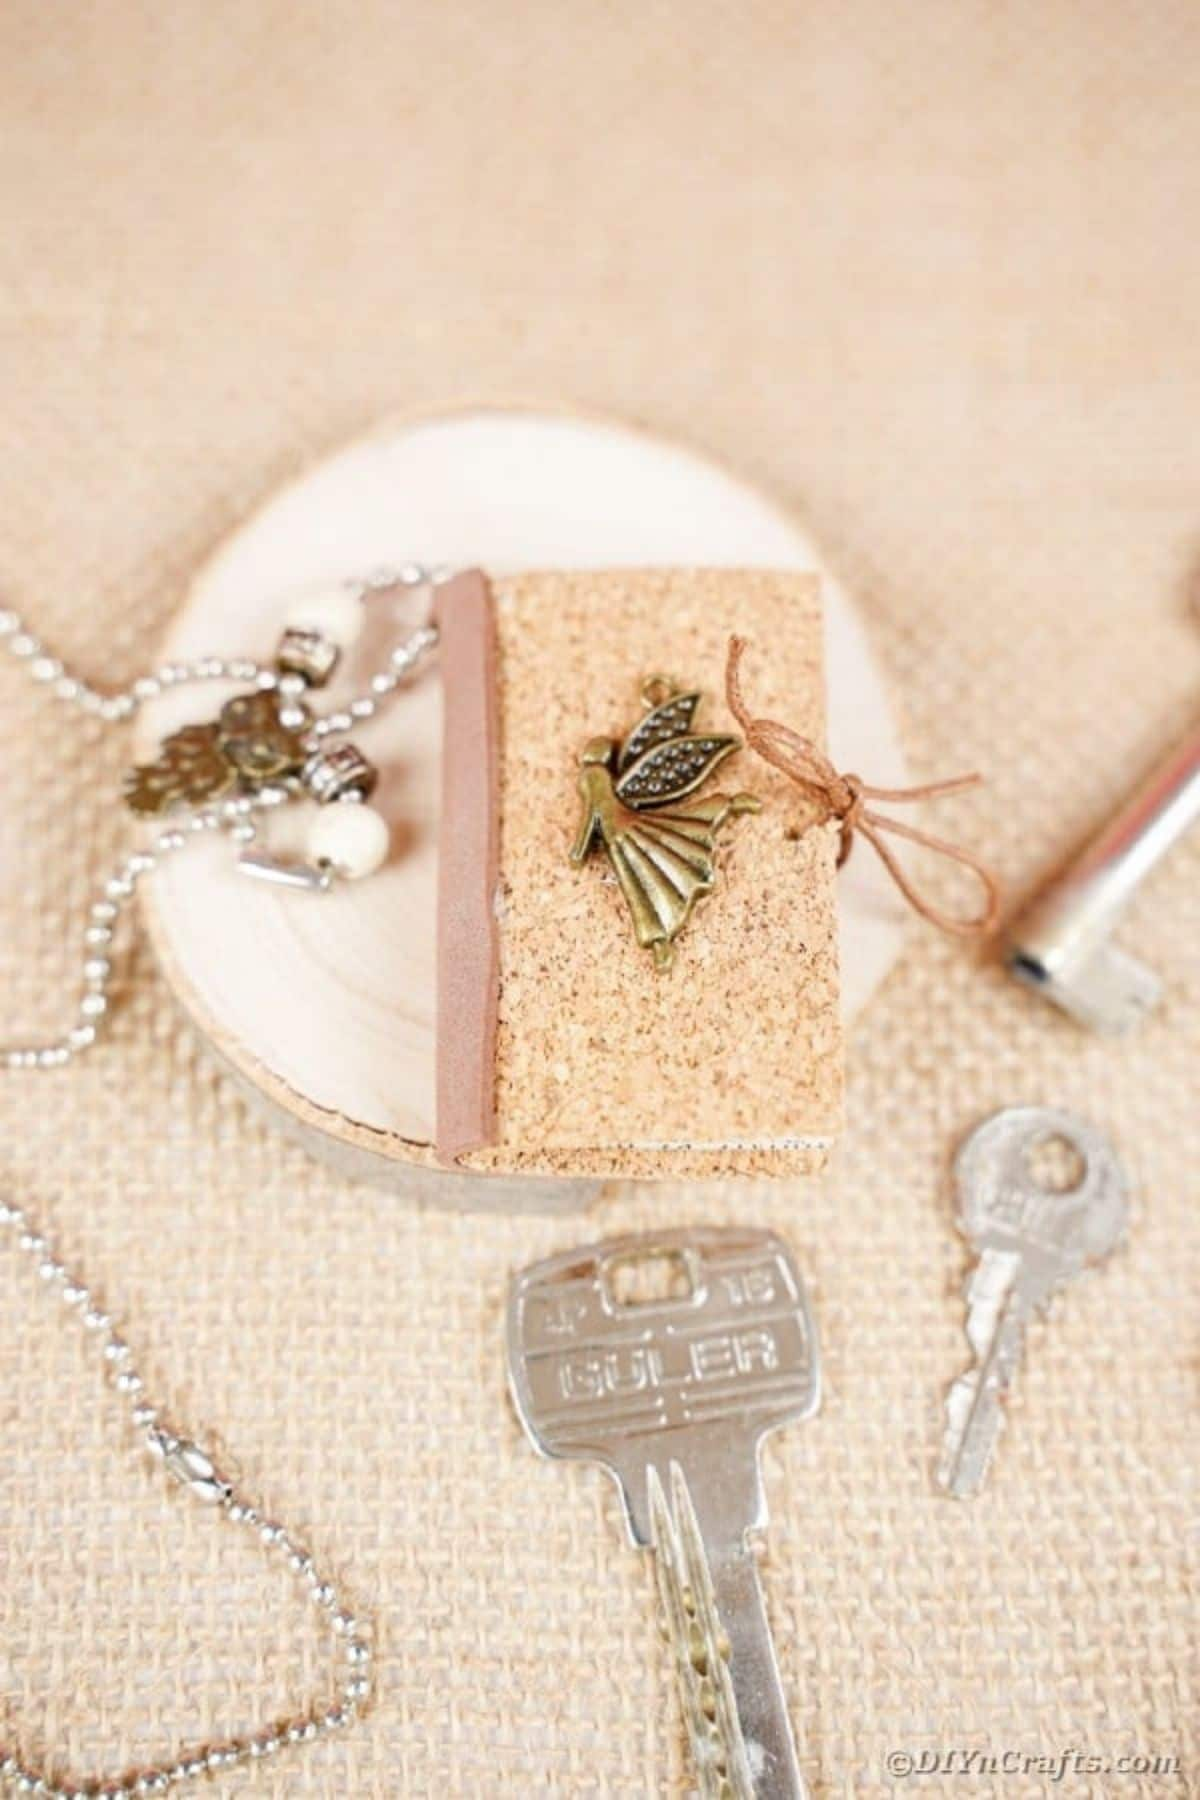 Miniature book keychain